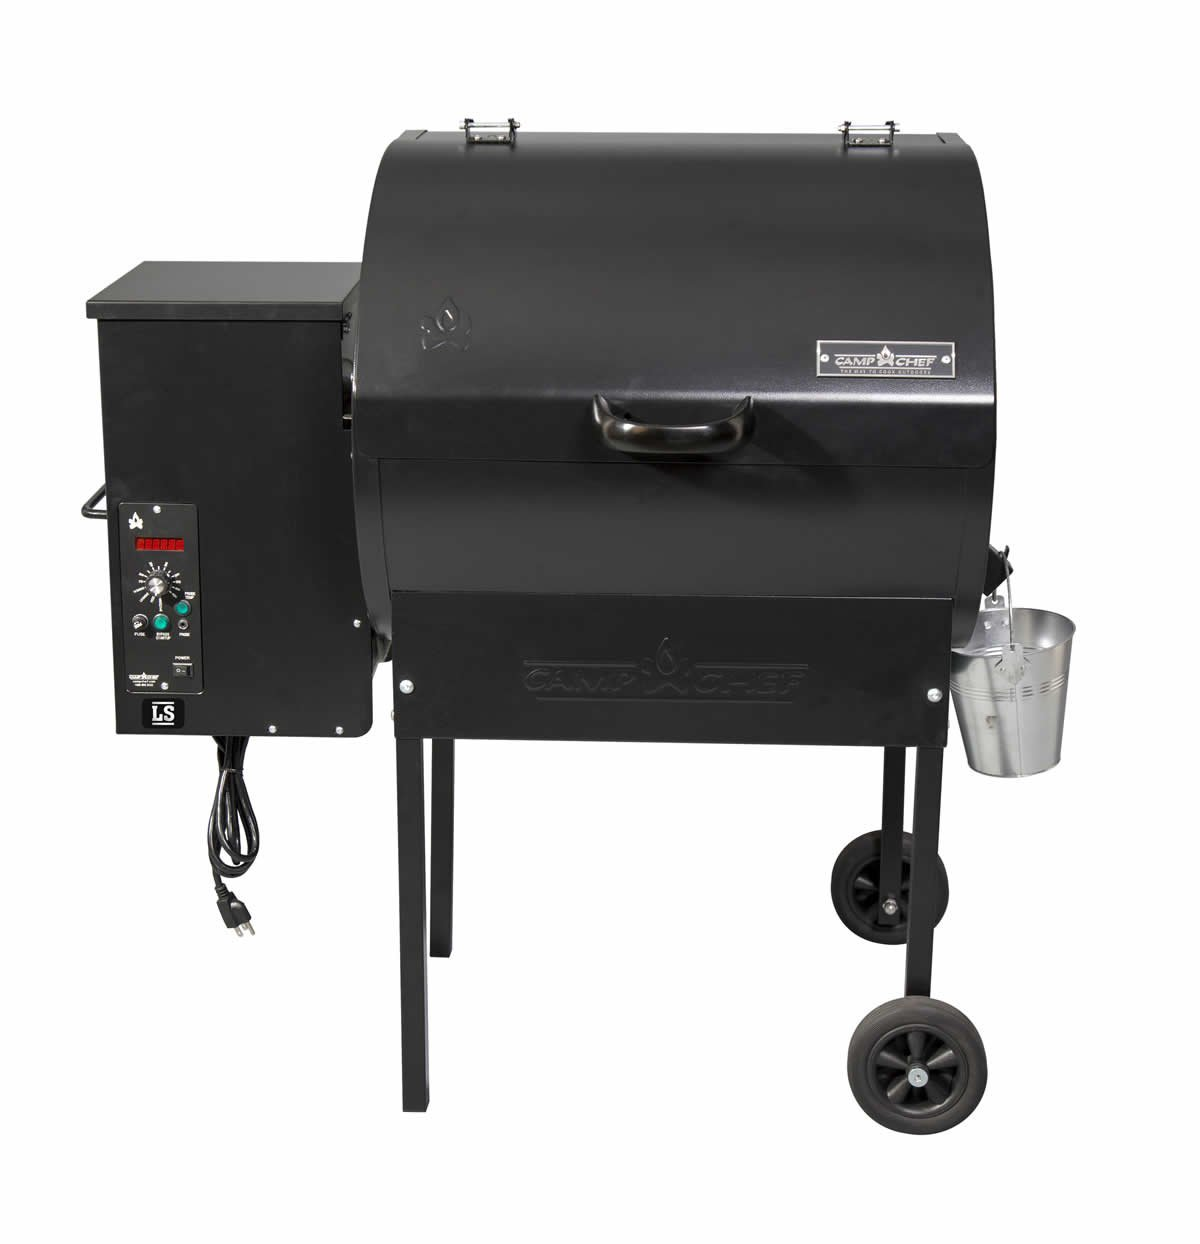 Camp Shef Best Pellet Smoker Grill